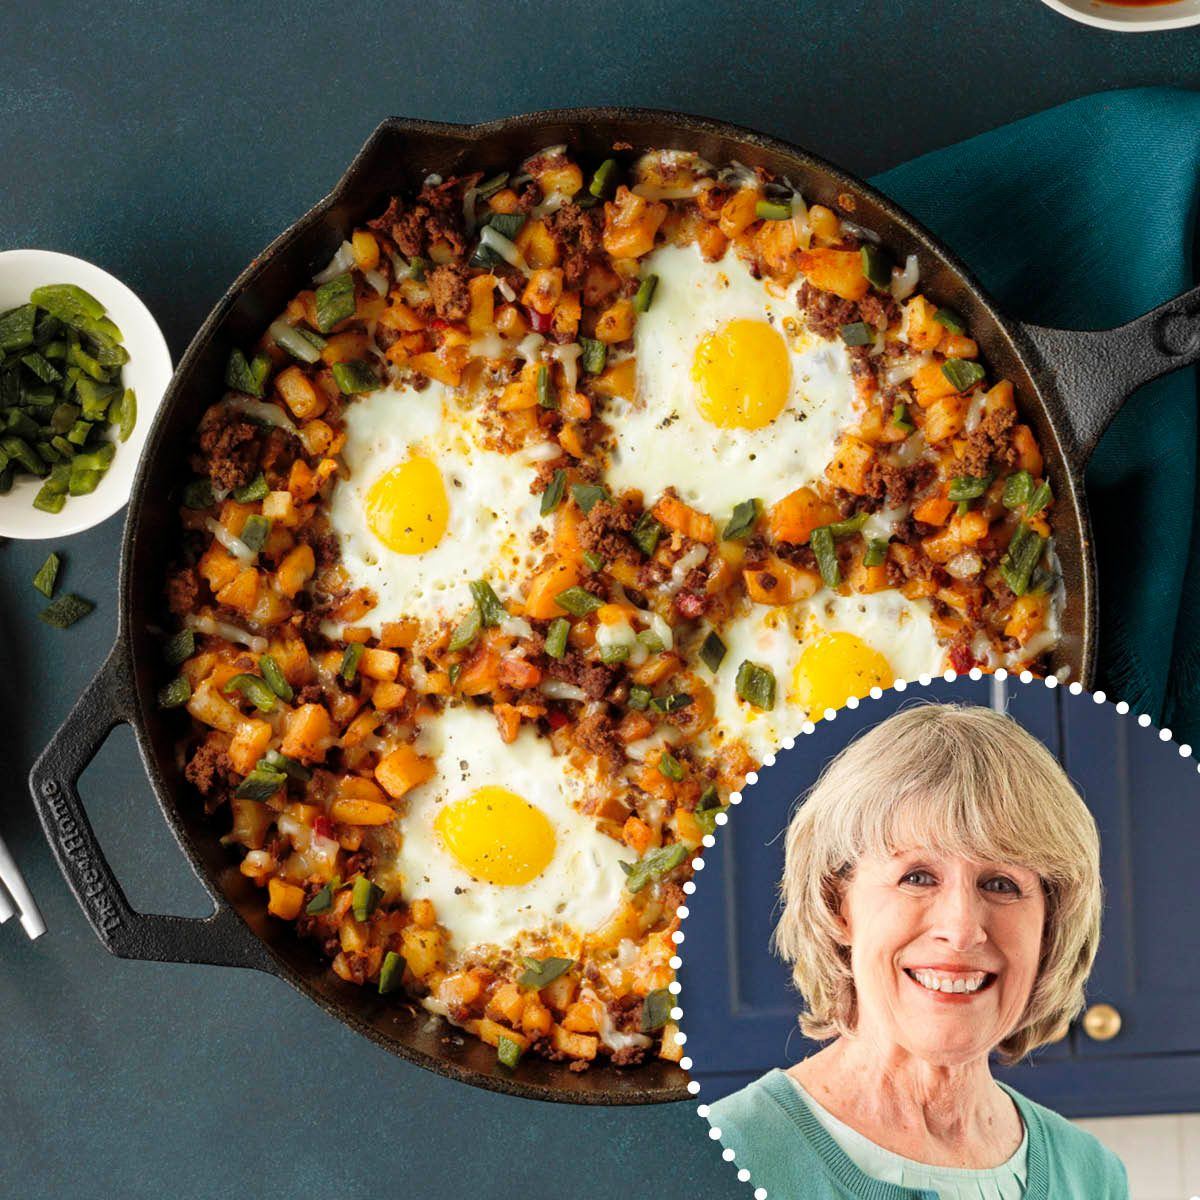 ROTY Joan Hallford Loaded Huevos Rancheros with Roasted Poblano Peppers